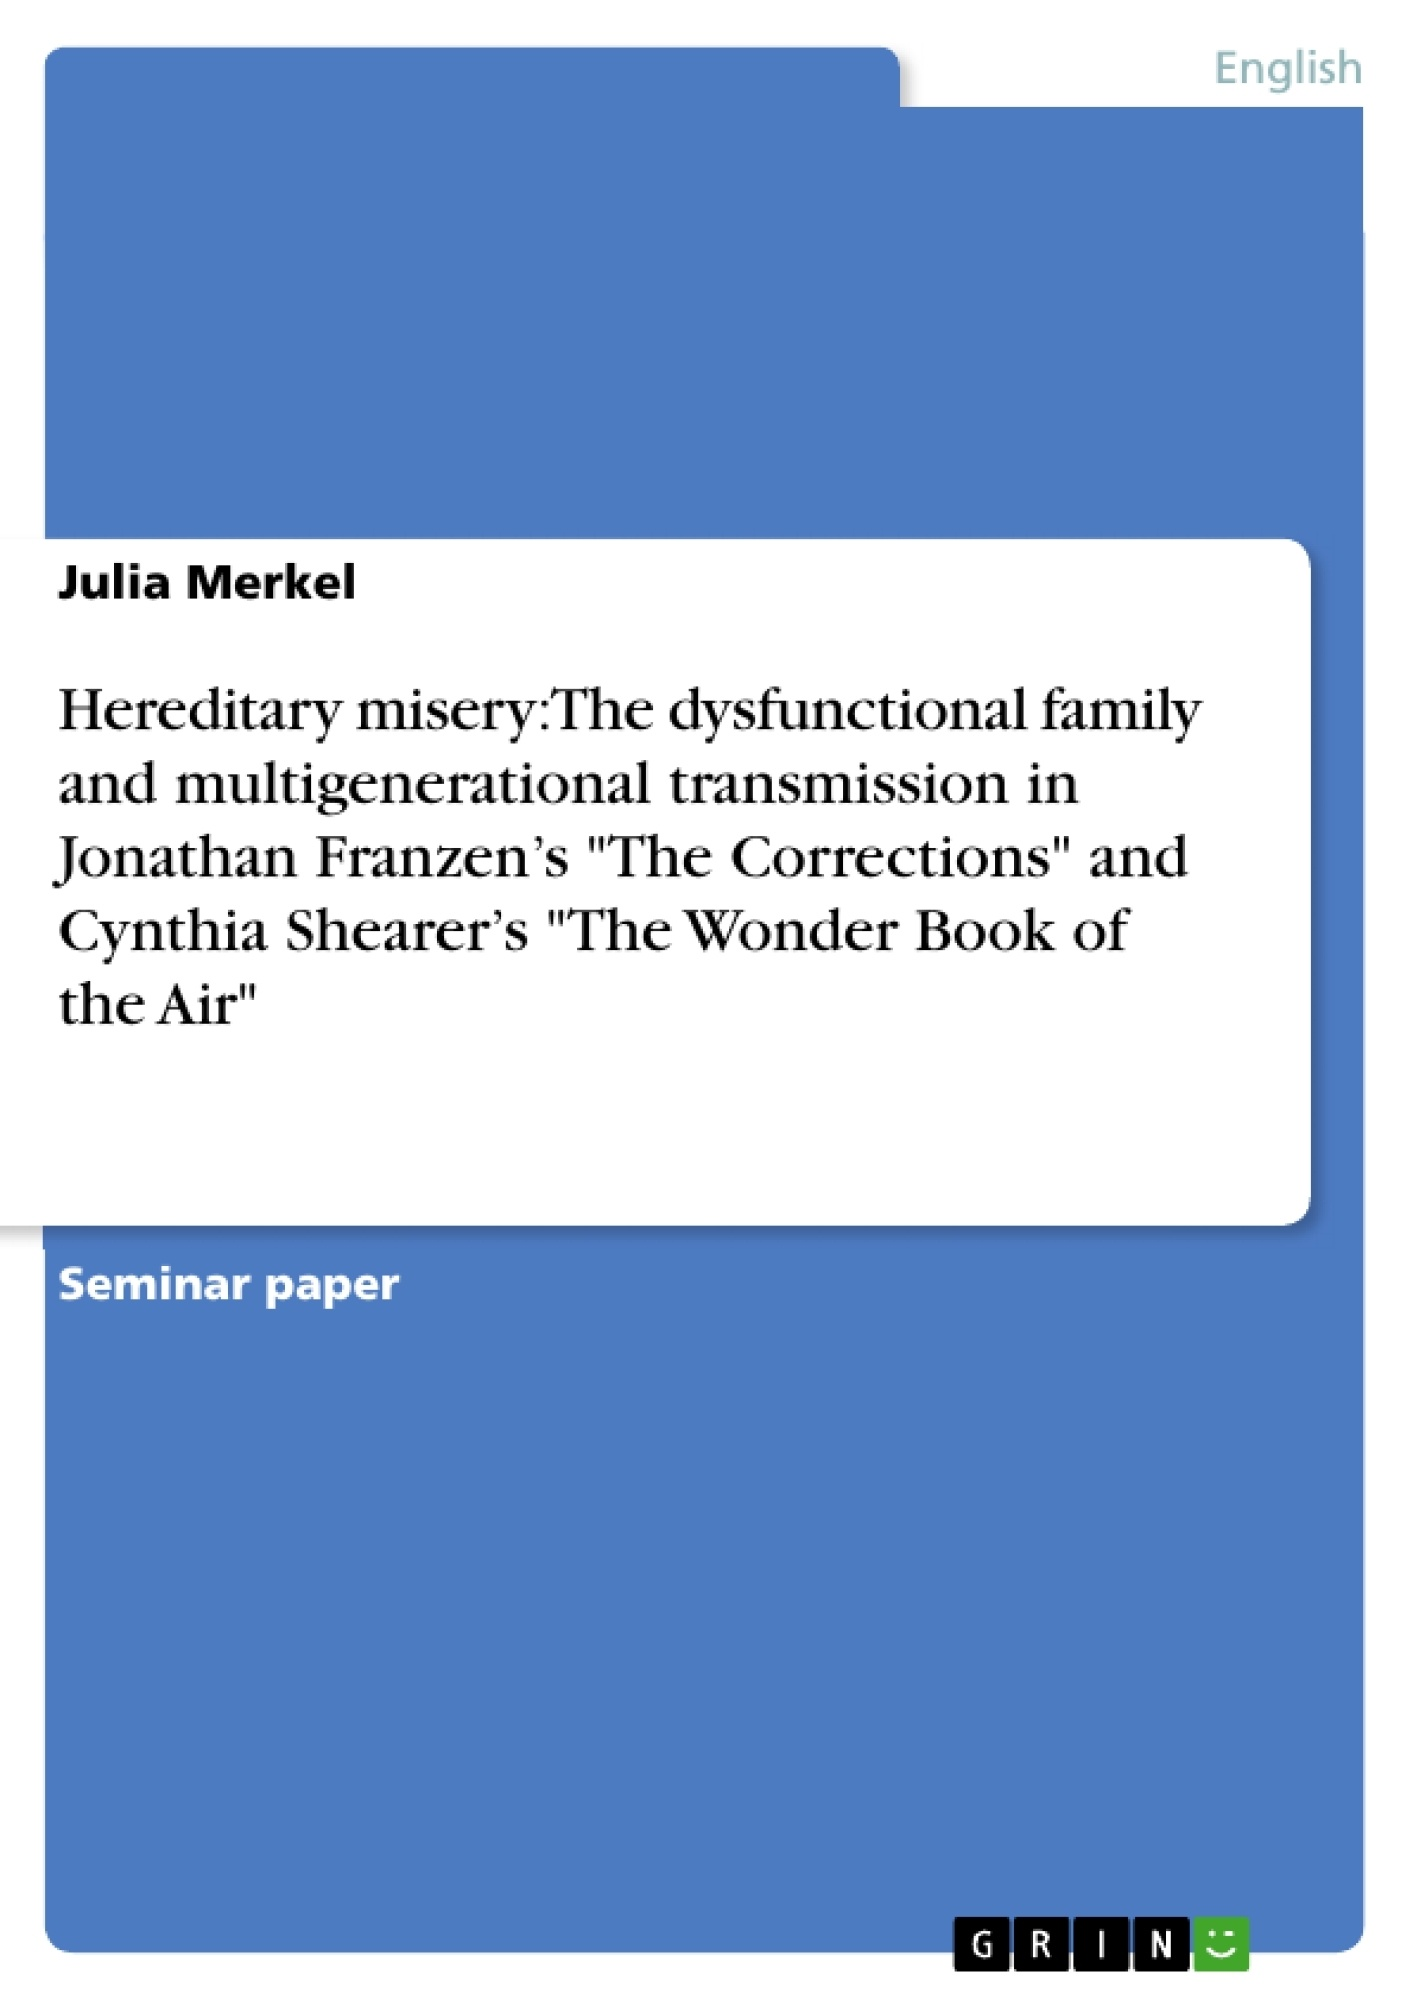 hereditary misery the dysfunctional family and multigenerational hereditary misery the dysfunctional family and multigenerational publish your master s thesis bachelor s thesis essay or term paper